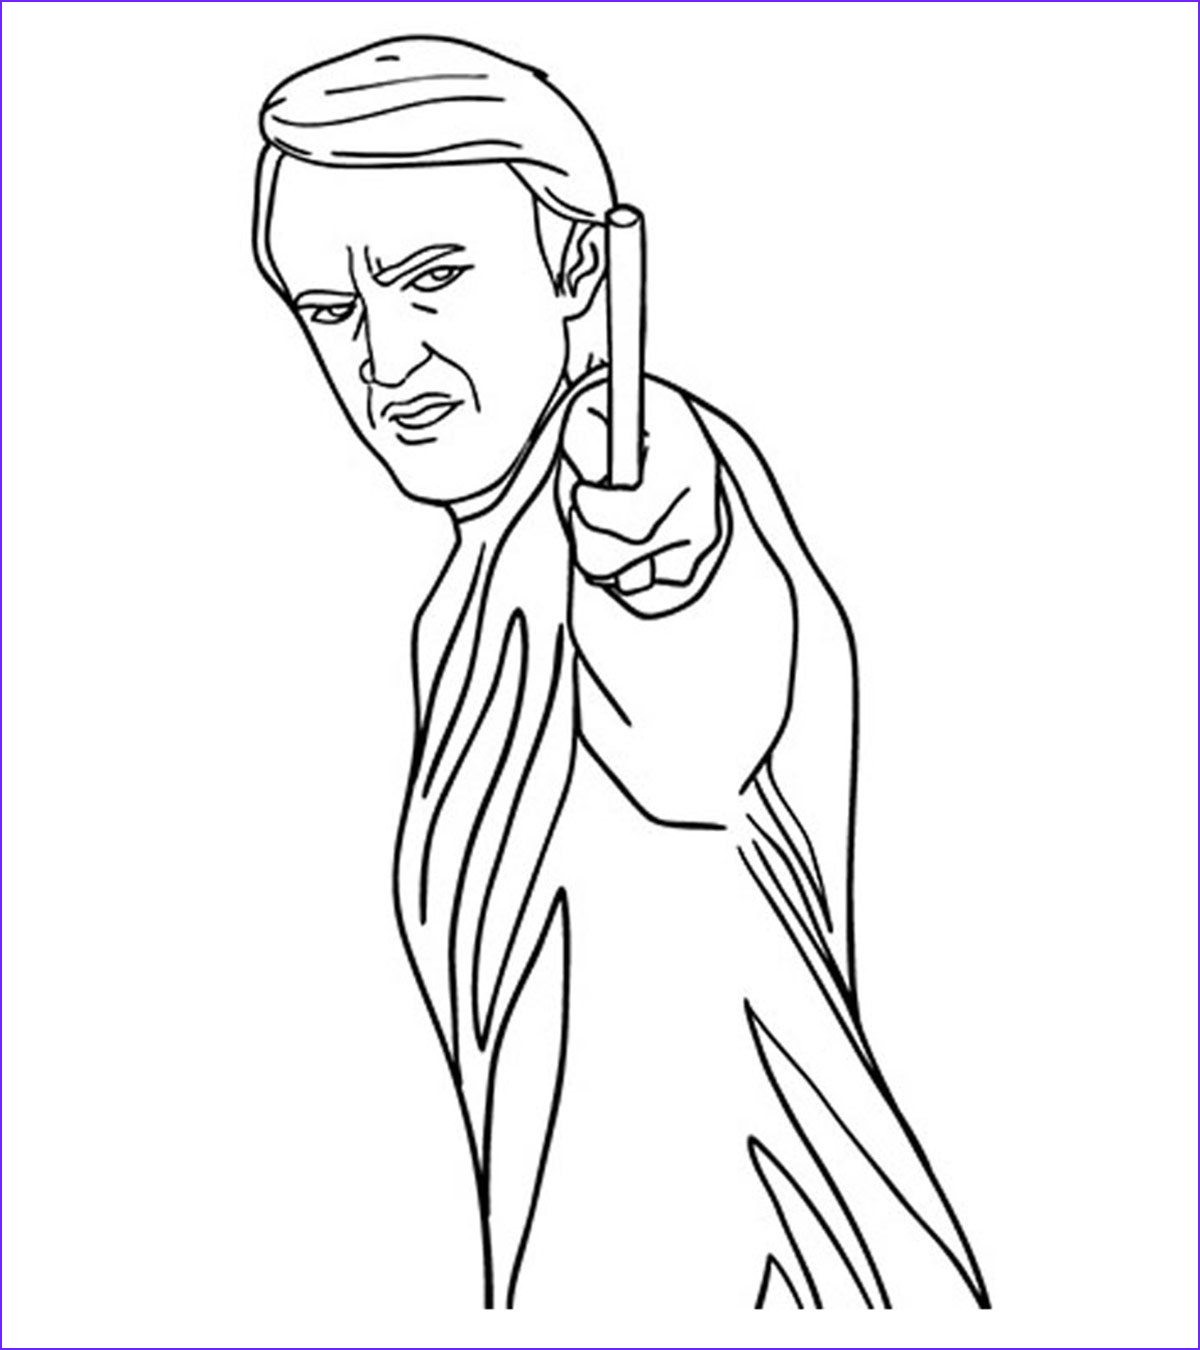 Harry Potter Coloring Book Page Inspirational Photos People Coloring Pages Momjunction